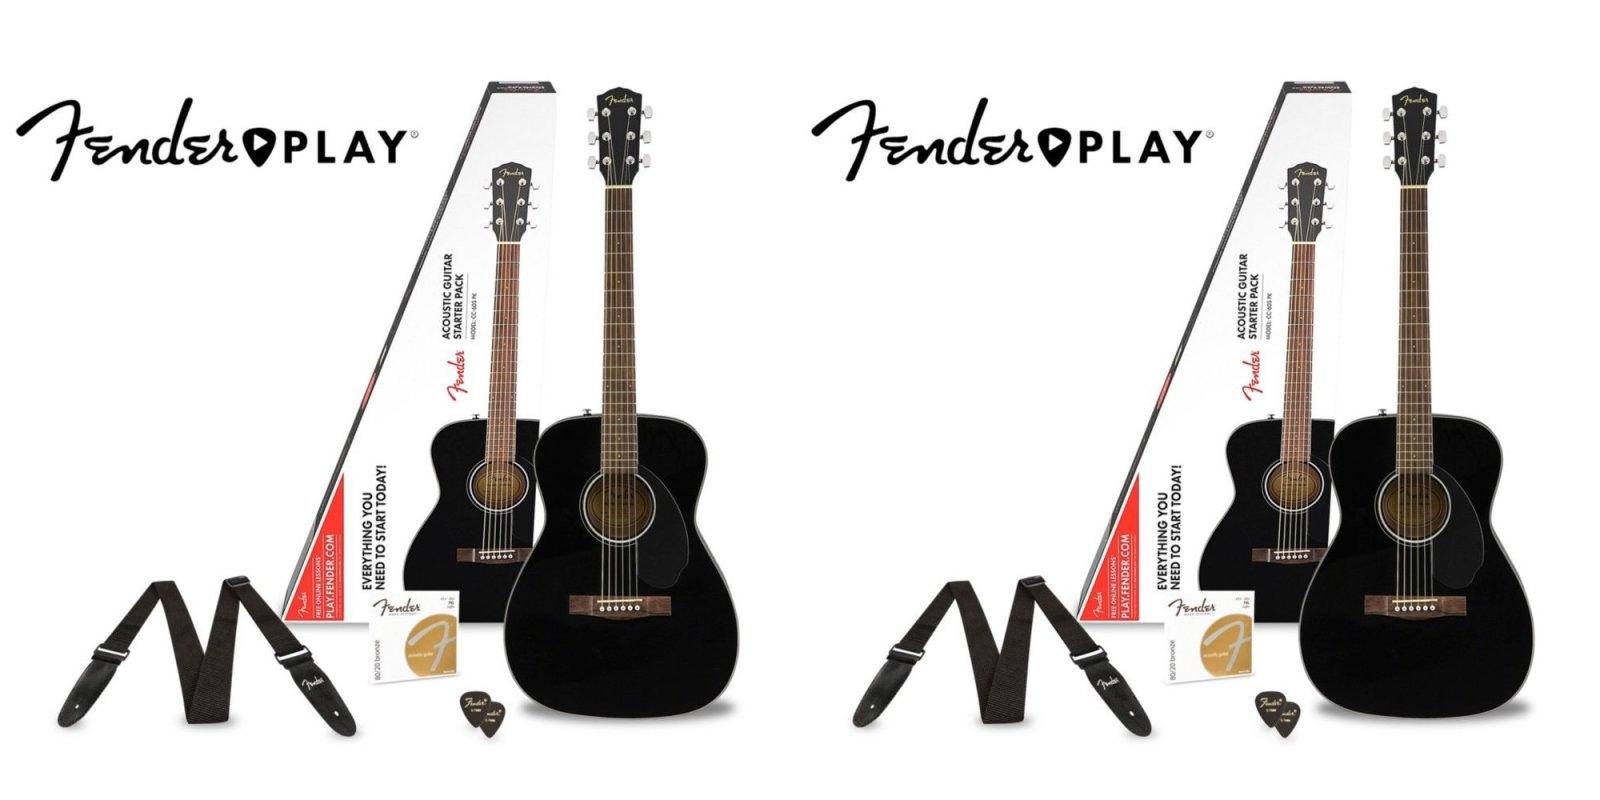 Learn to play guitar w/ this Fender Acoustic & 3 months of